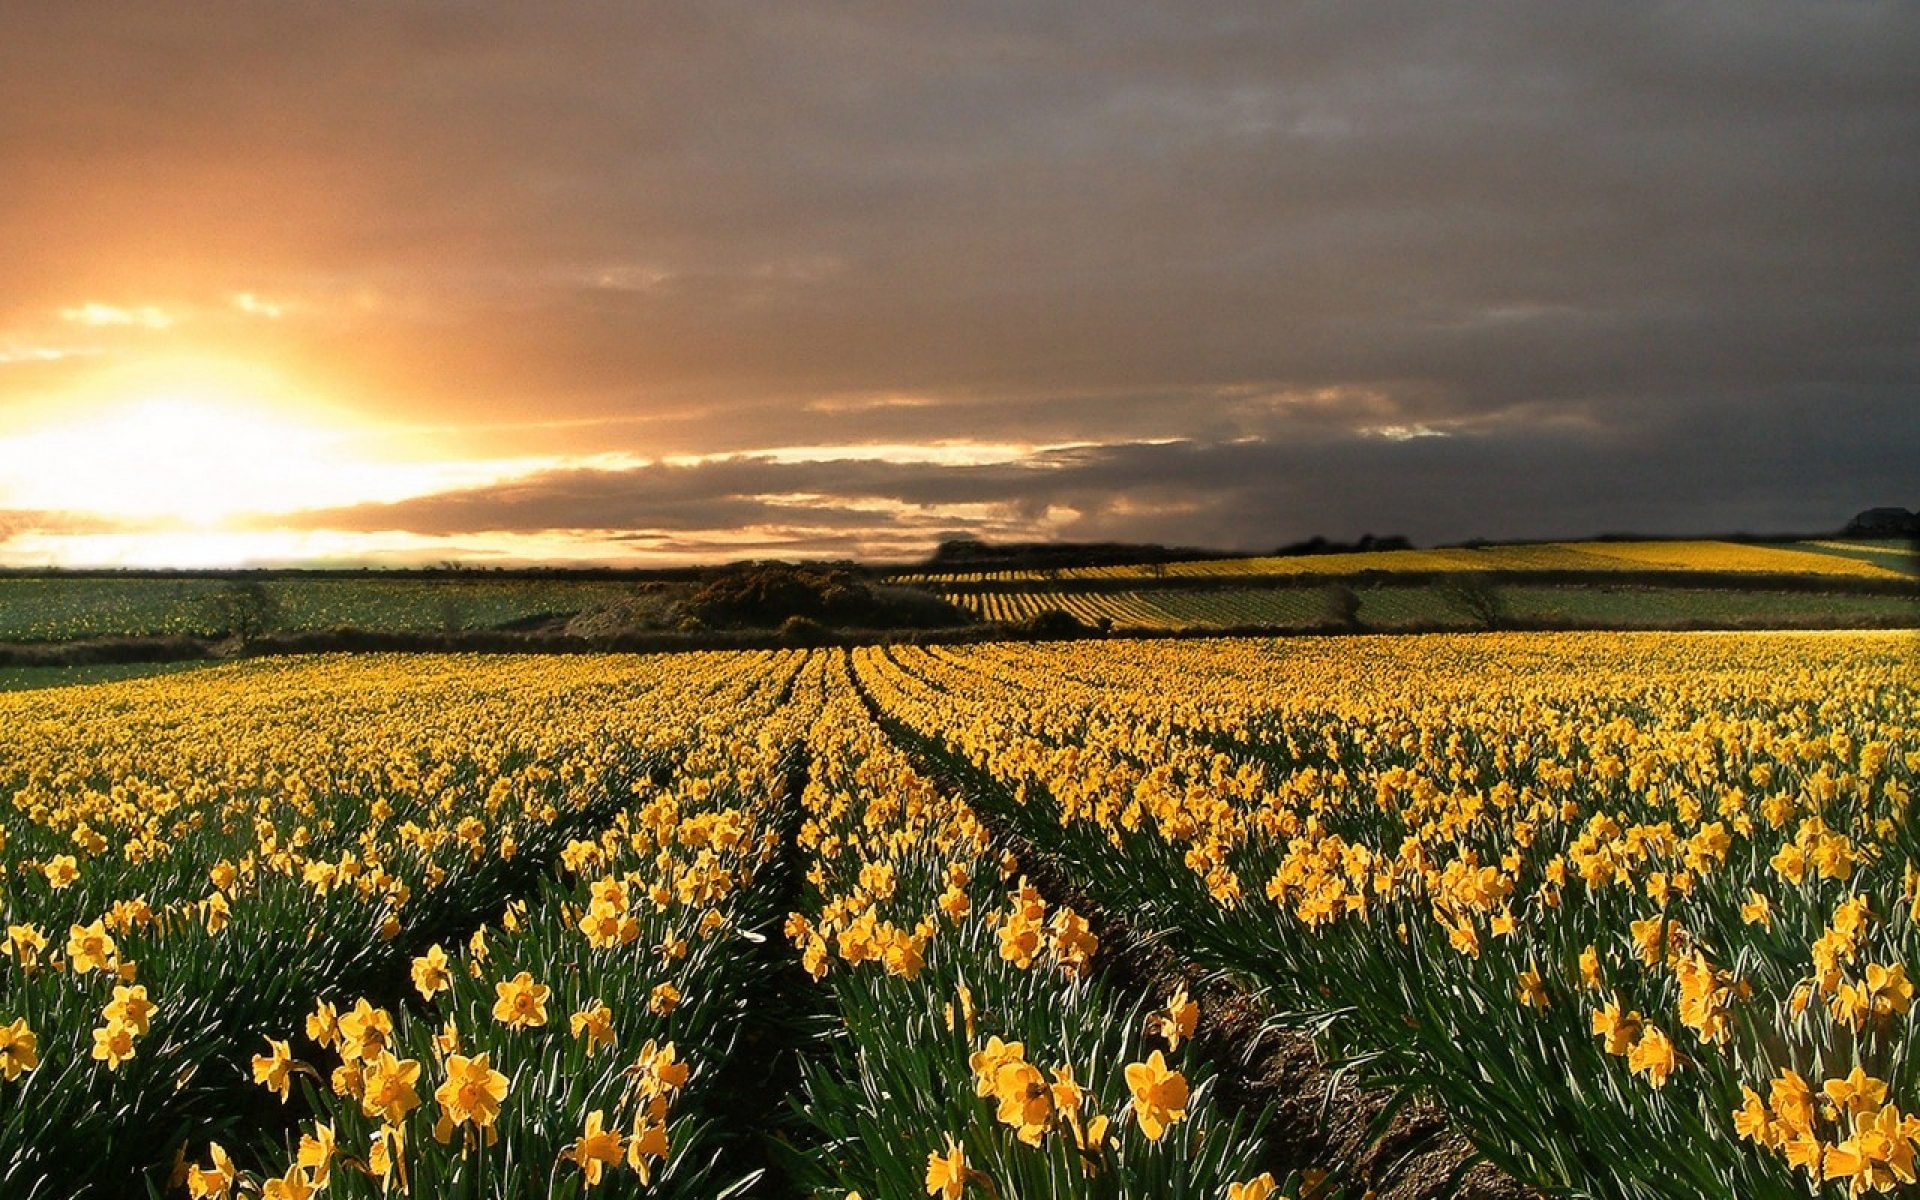 Iphone 5 Wallpapers Quotes Daffodils Field Sunset Horizon Wallpapers Daffodils